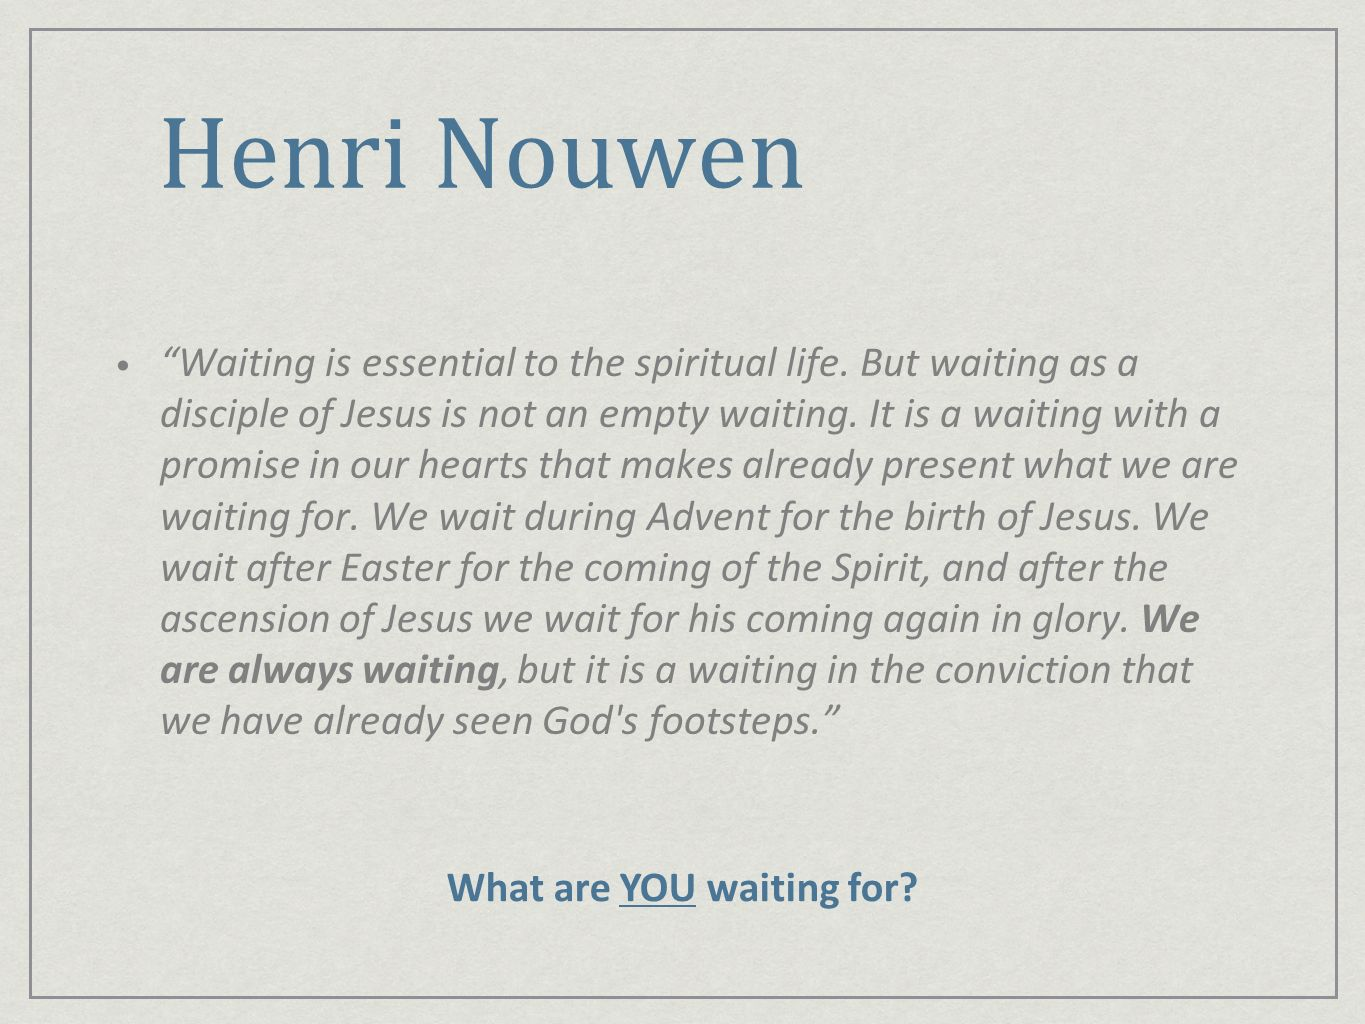 Henri Nouwen Waiting is essential to the spiritual life. But waiting as a disciple of Jesus is not an empty waiting. It is a waiting with a promise in